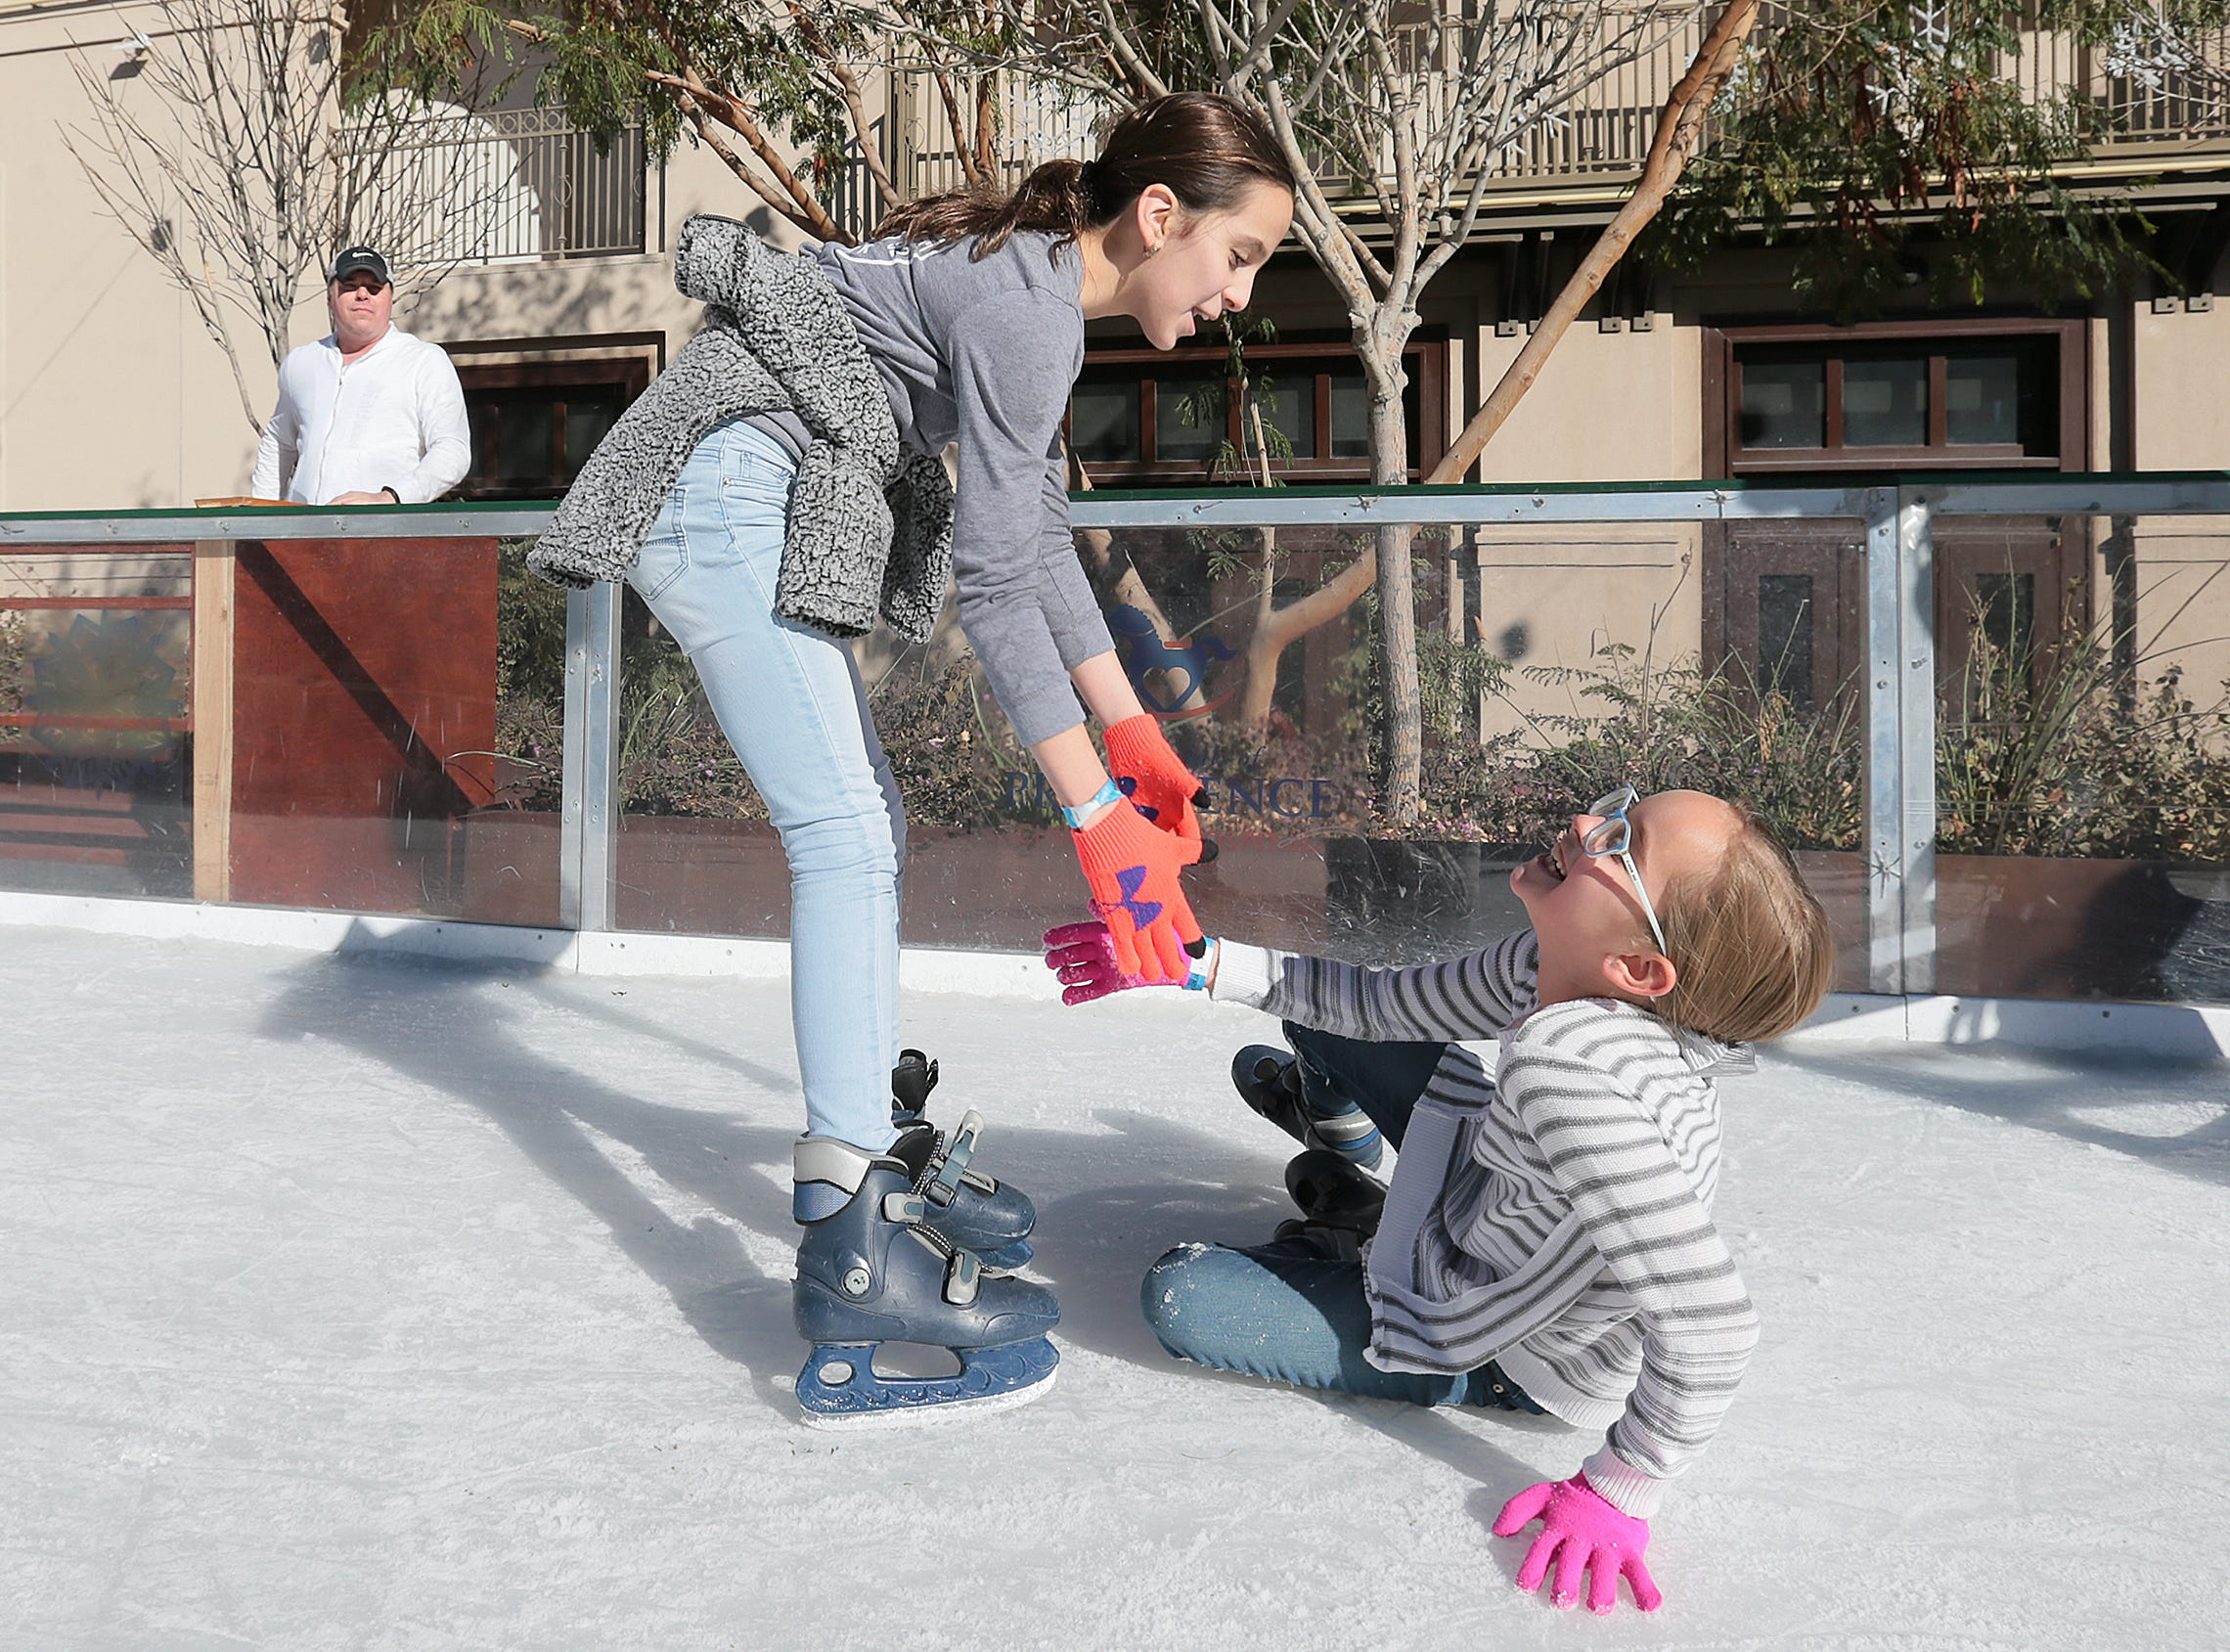 Learning to skate can include a few tumbles as WinterFest wraps up this weekend in Downtown El Paso.